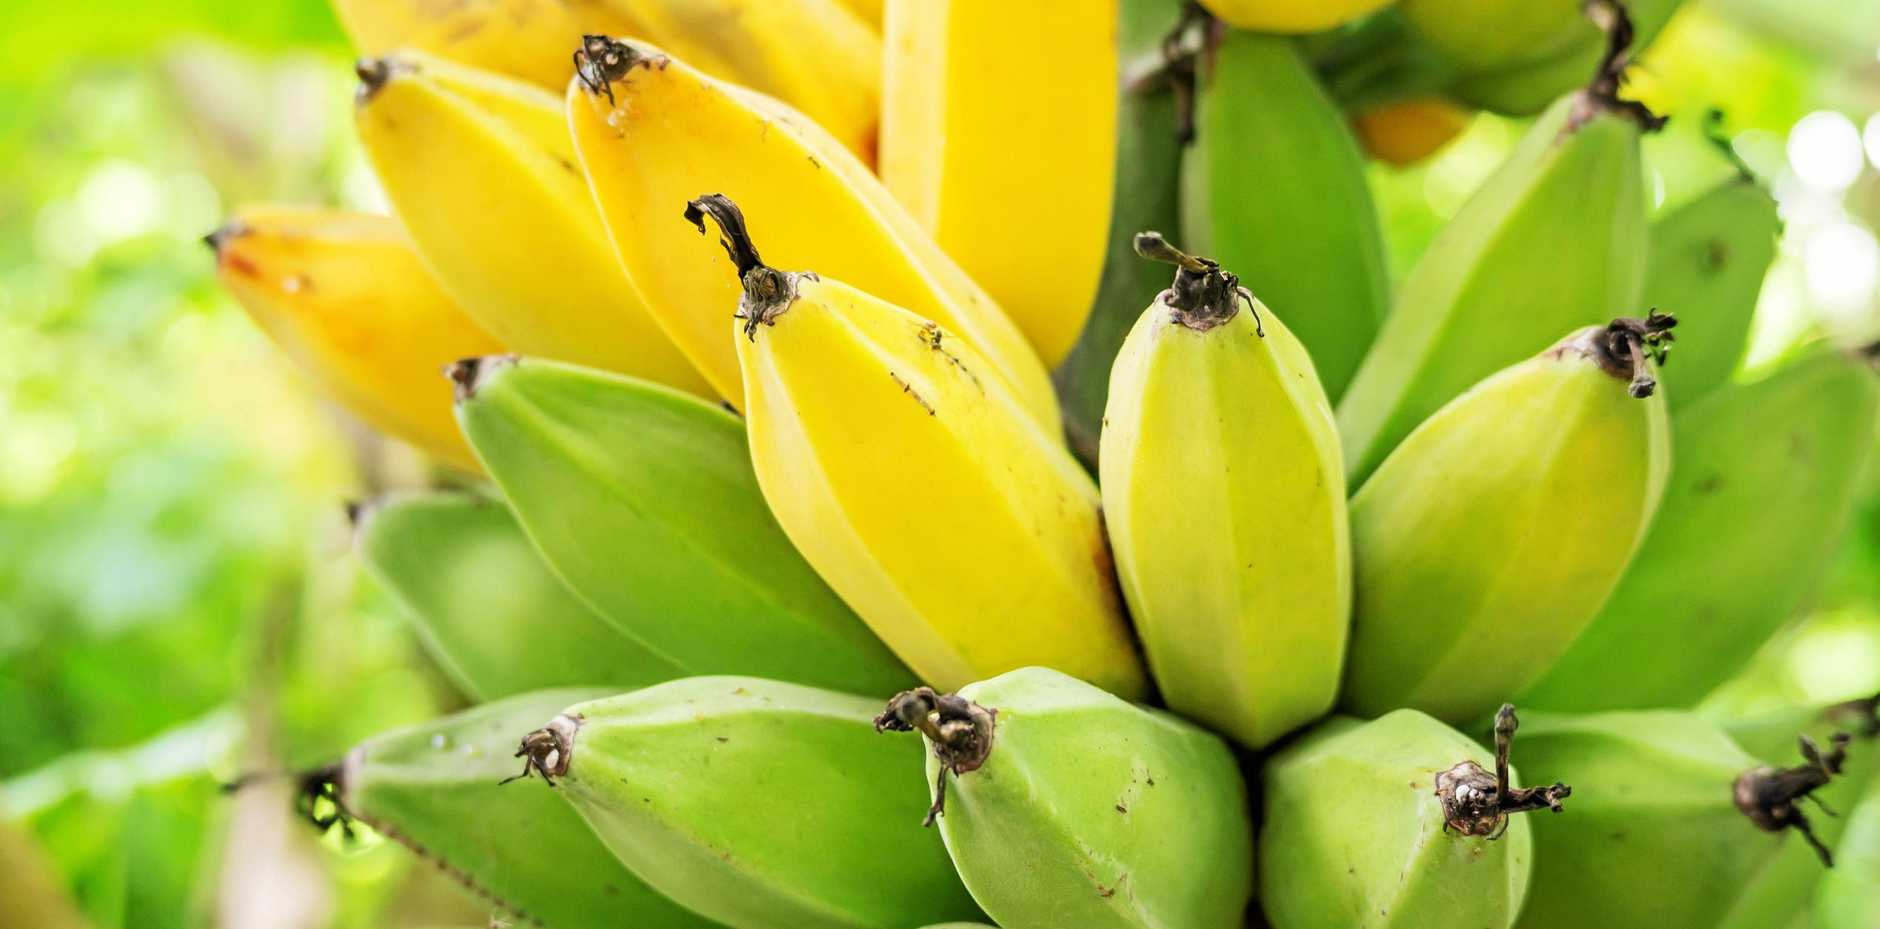 Bananas are great for muffins, cakes, smoothies and fruit salads.